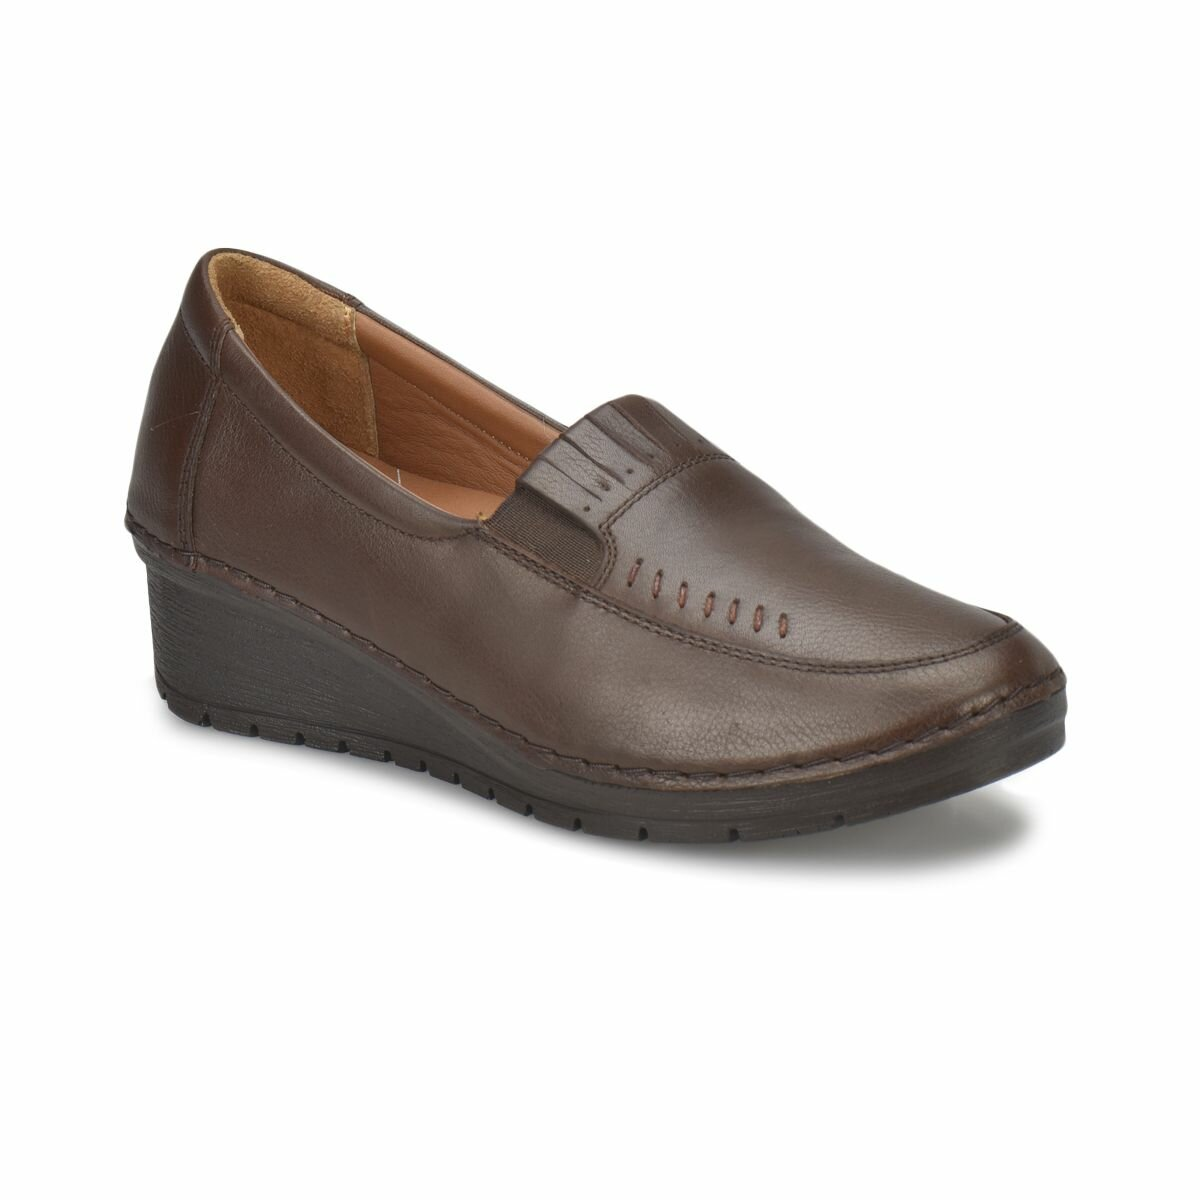 FLO 81.111080.Z Brown Women Basic Comfort Polaris 5 Point